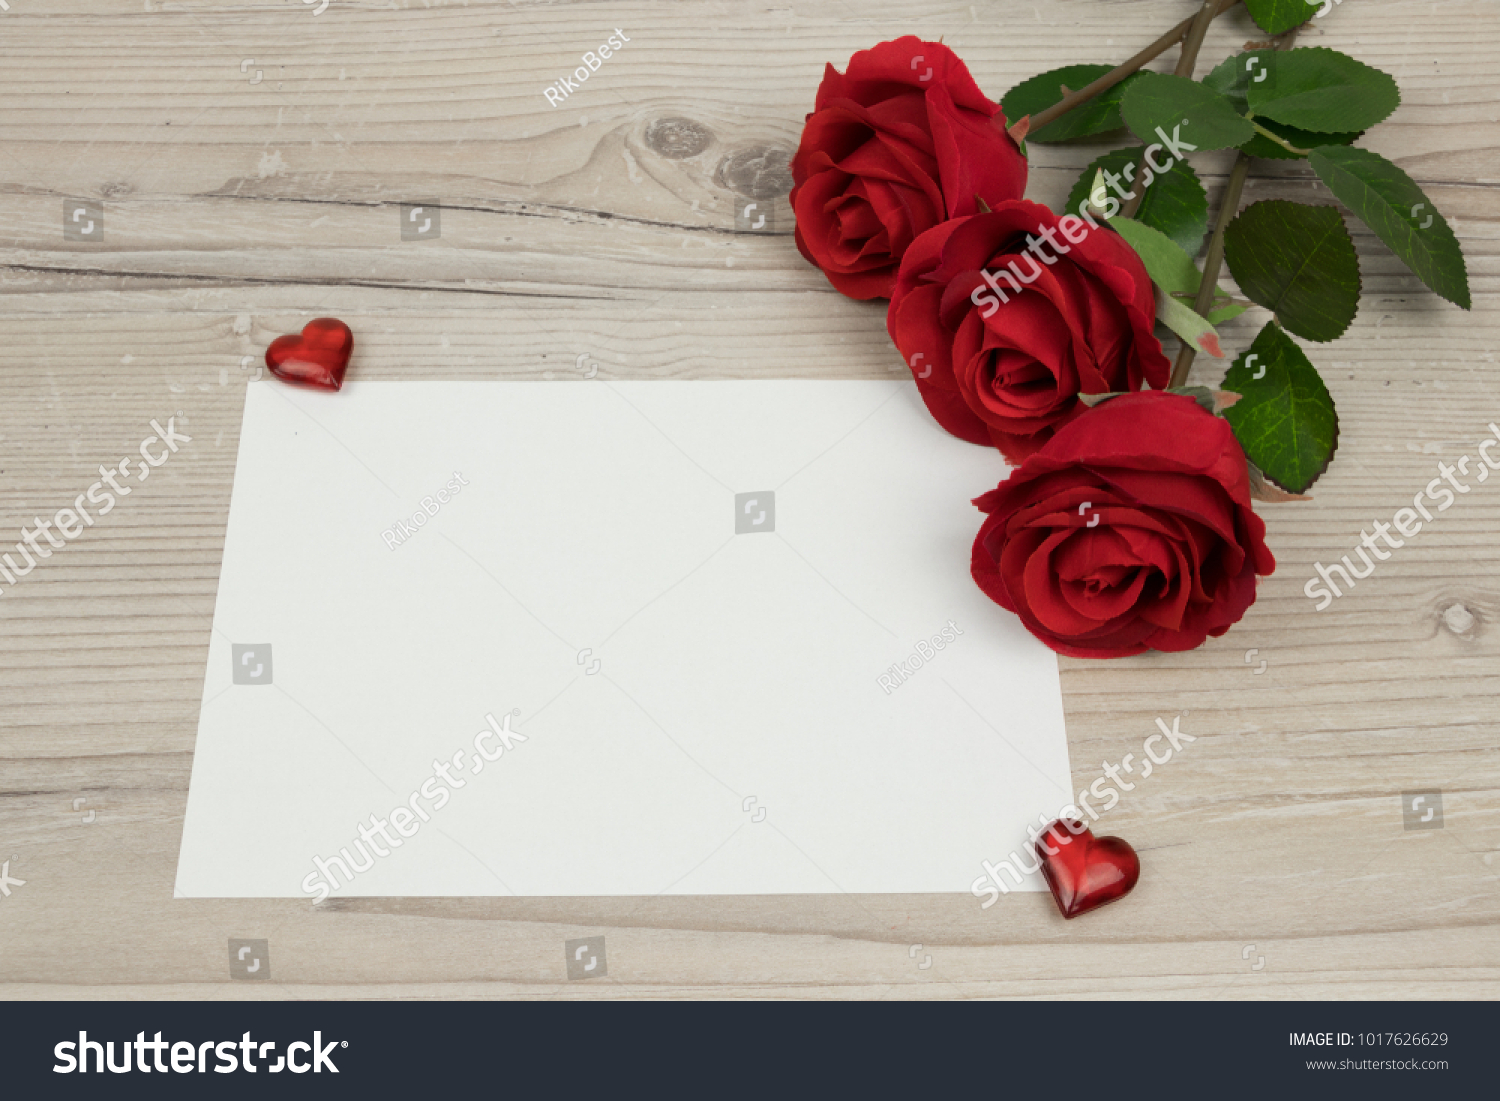 Red roses and a blank invitation card on wooden background ...